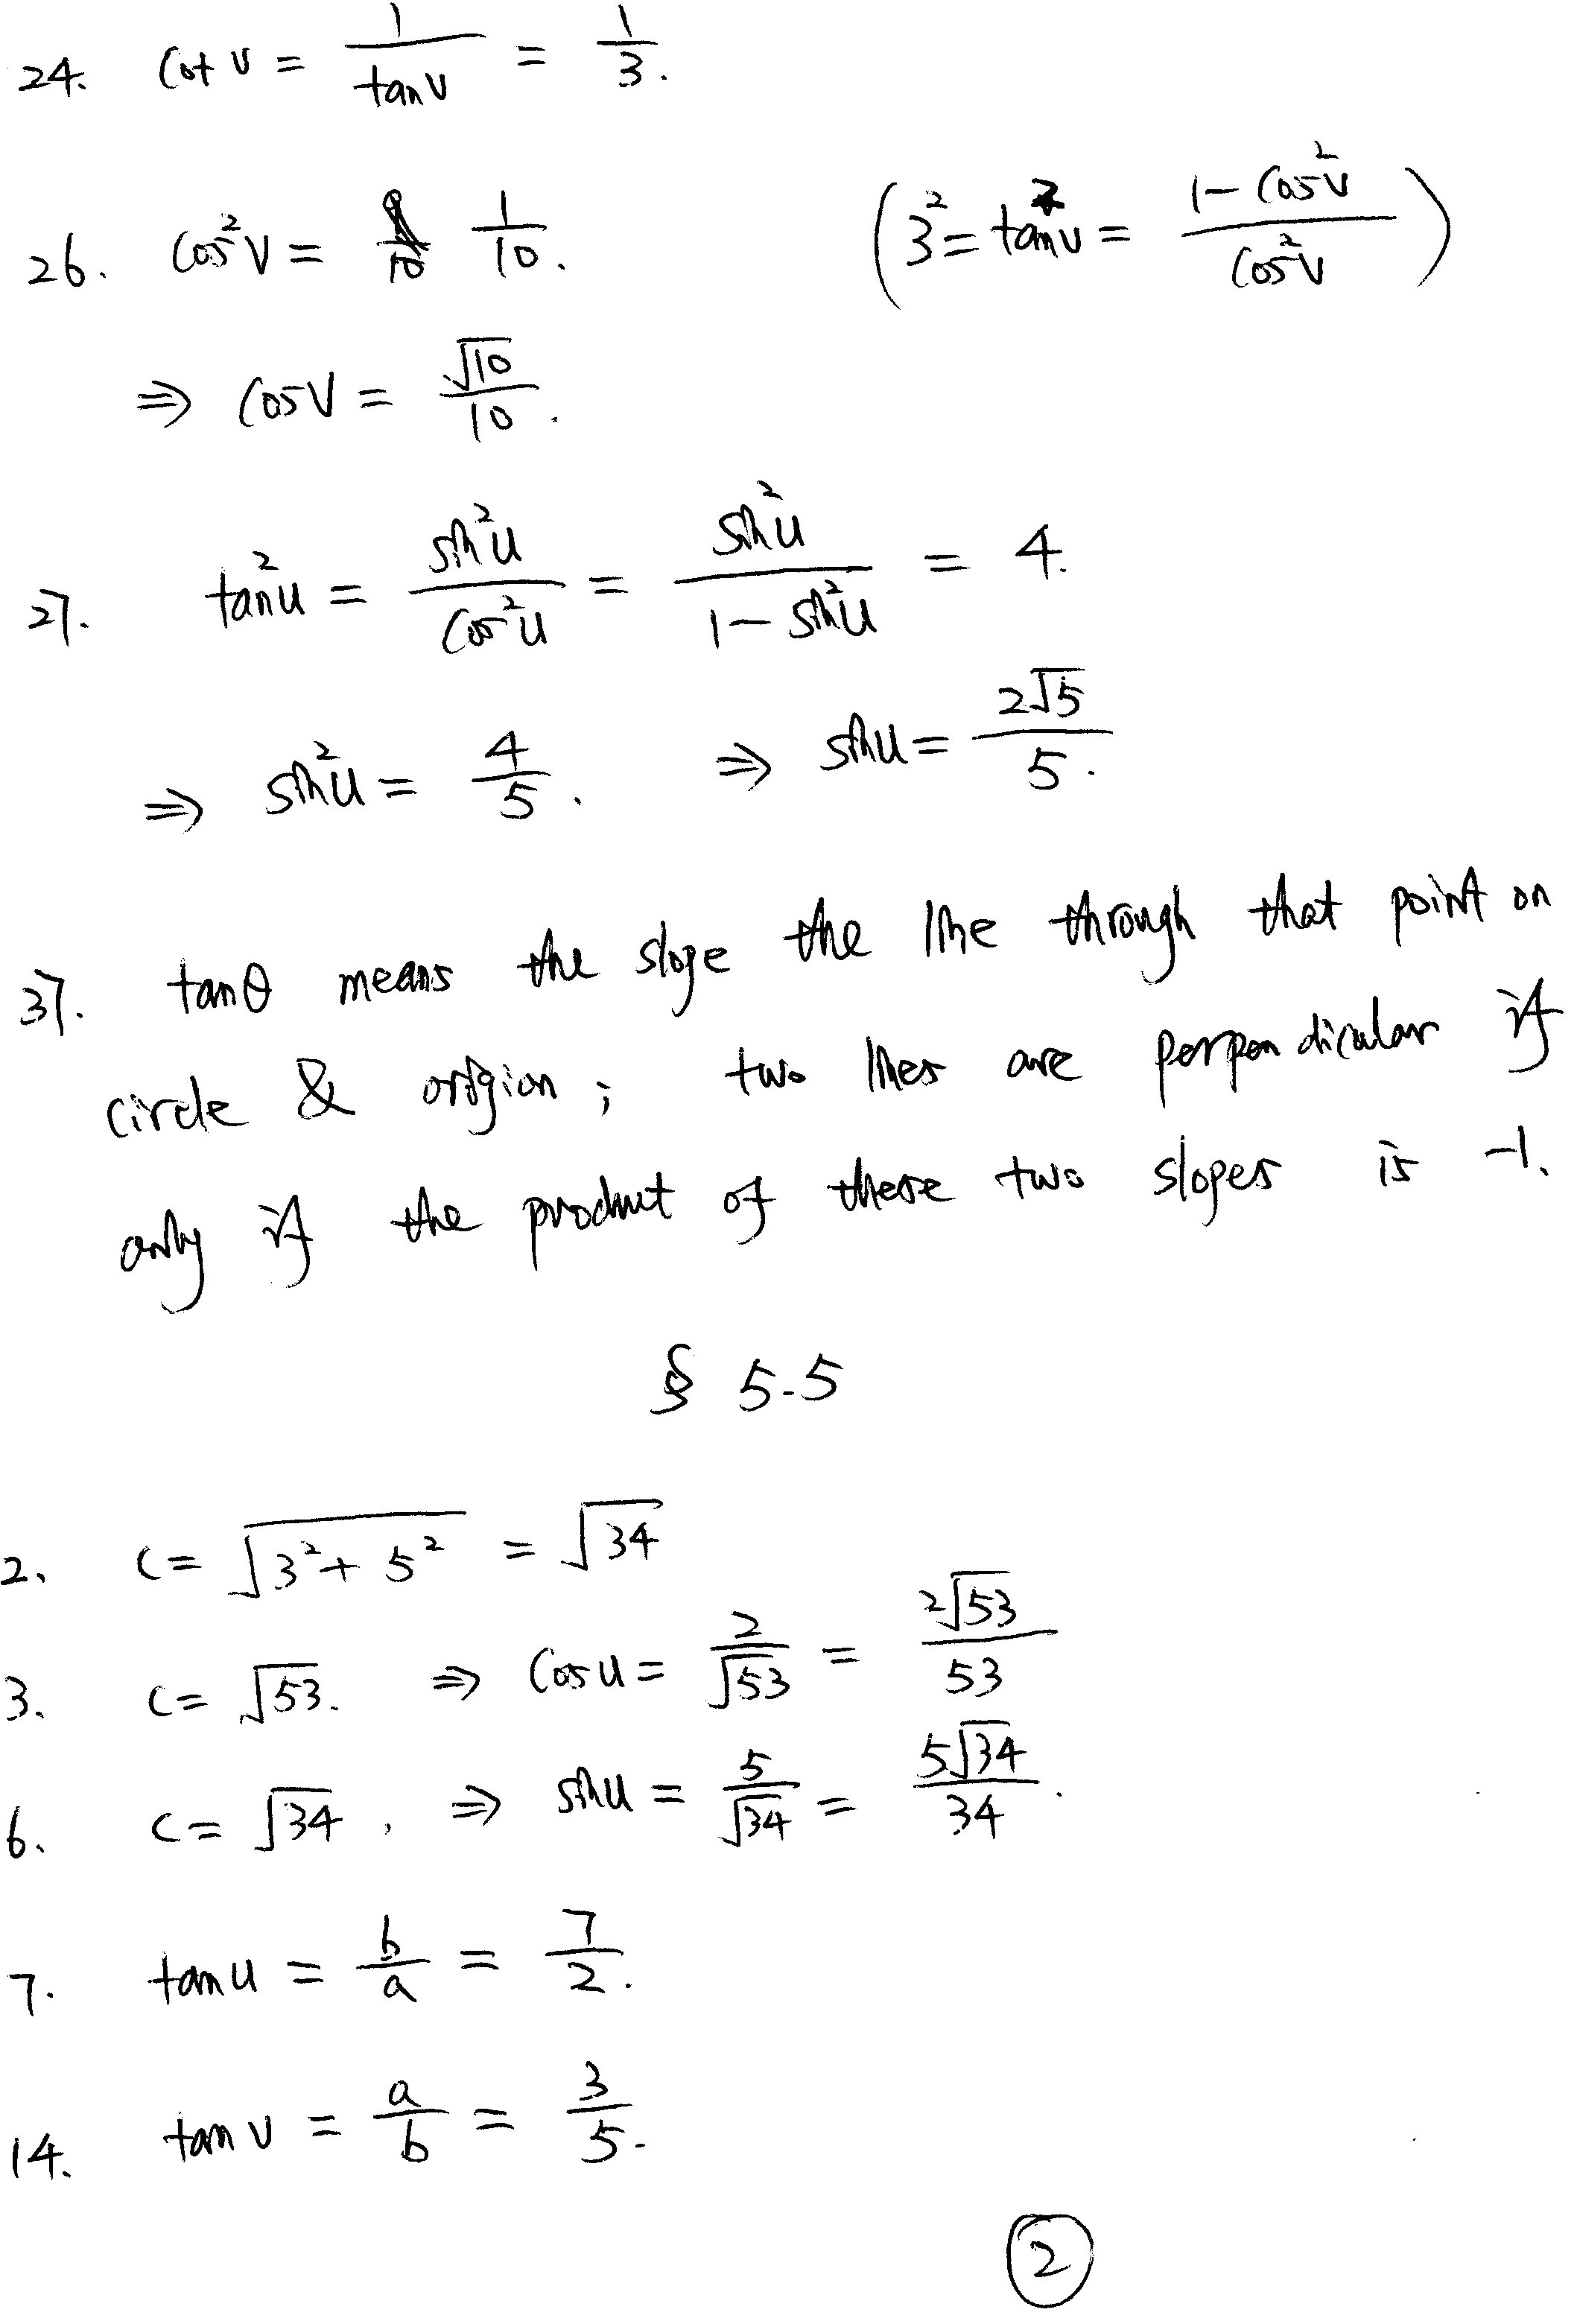 master thesis real time stereo vision essays on future india essay – Holt Algebra 2 Worksheets